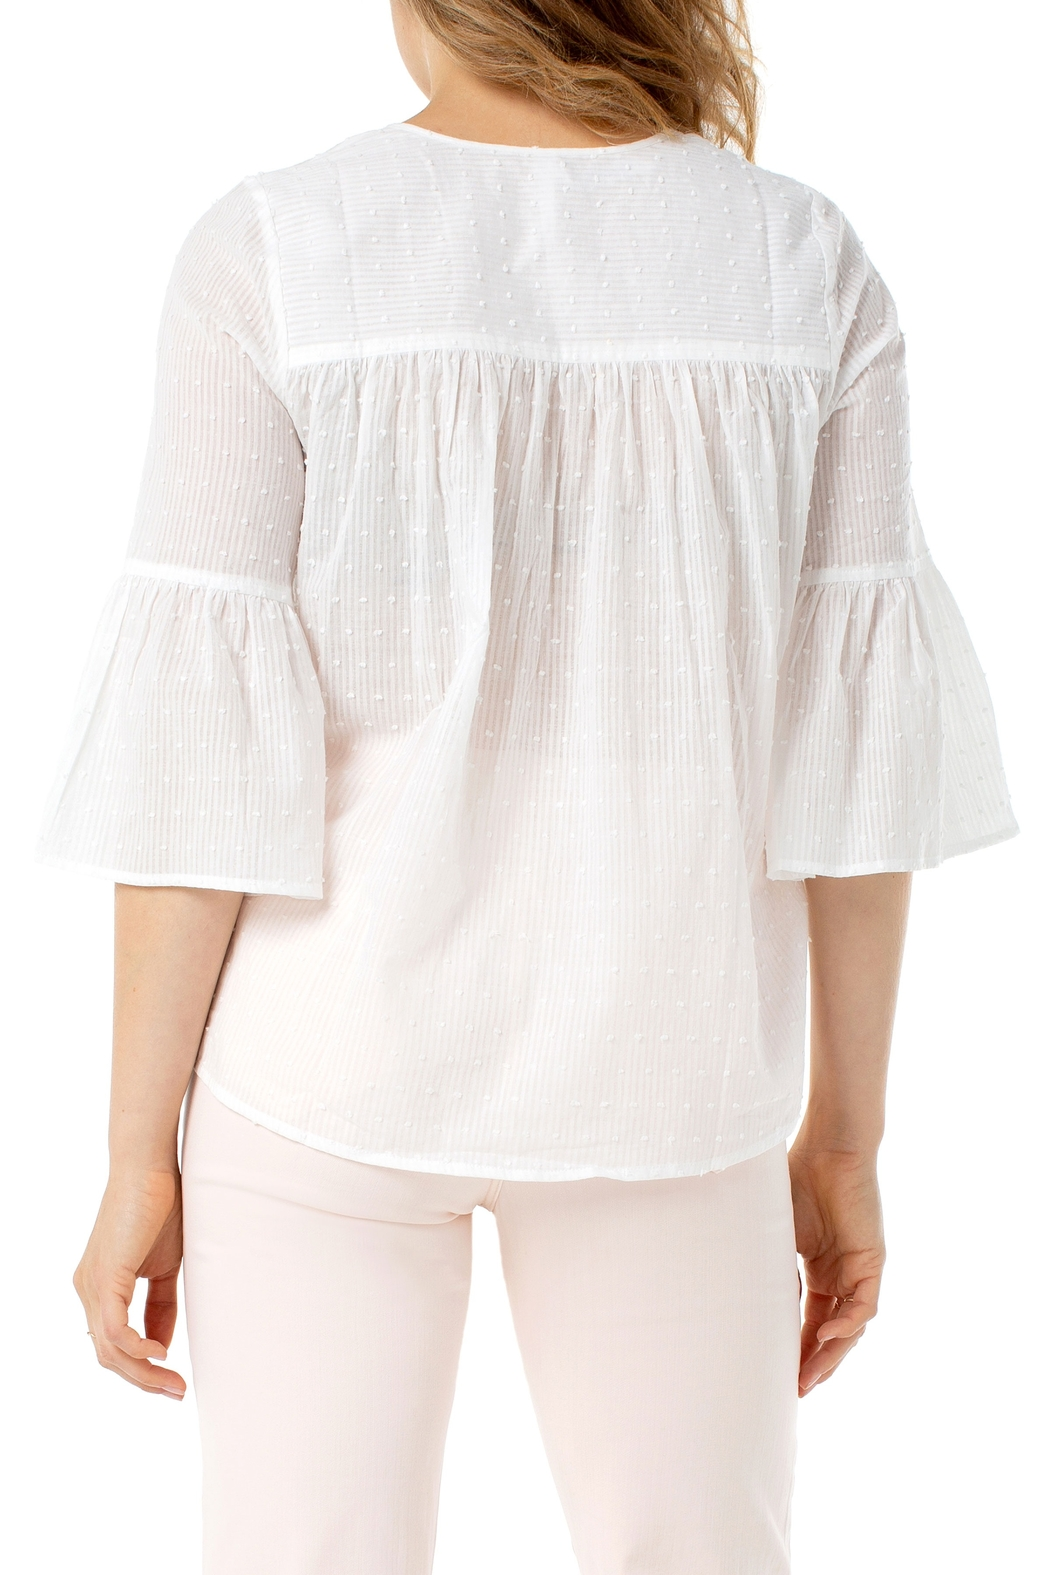 Liverpool  Bell Sleeve Popover White Swiss Dot Top - Front Full Image